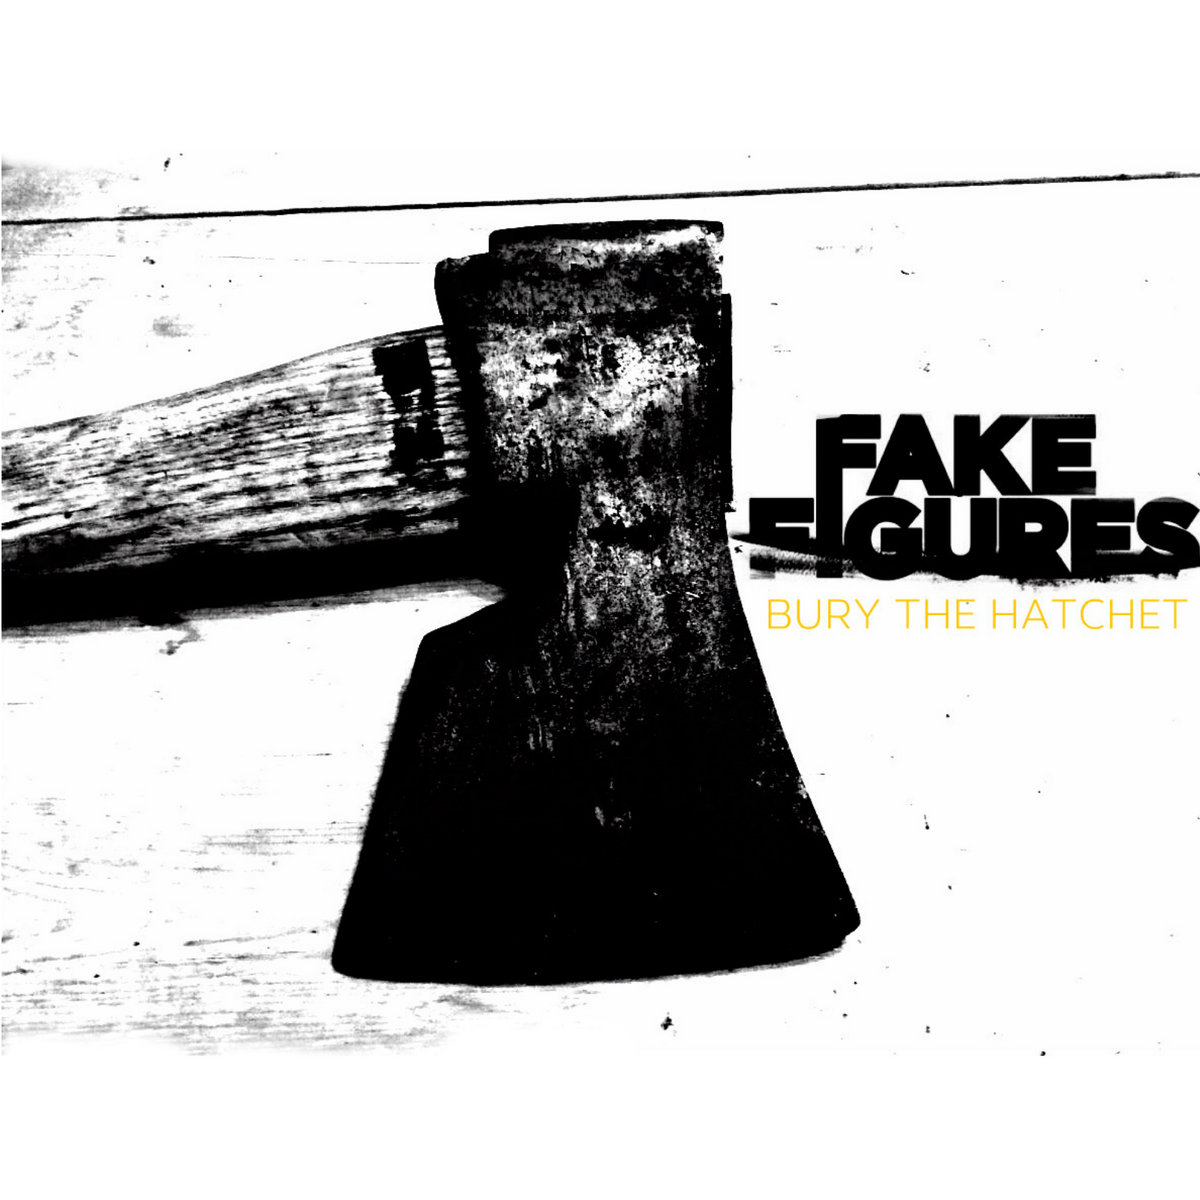 Fake Figures - Bury the Hatchet [Single] (2018)